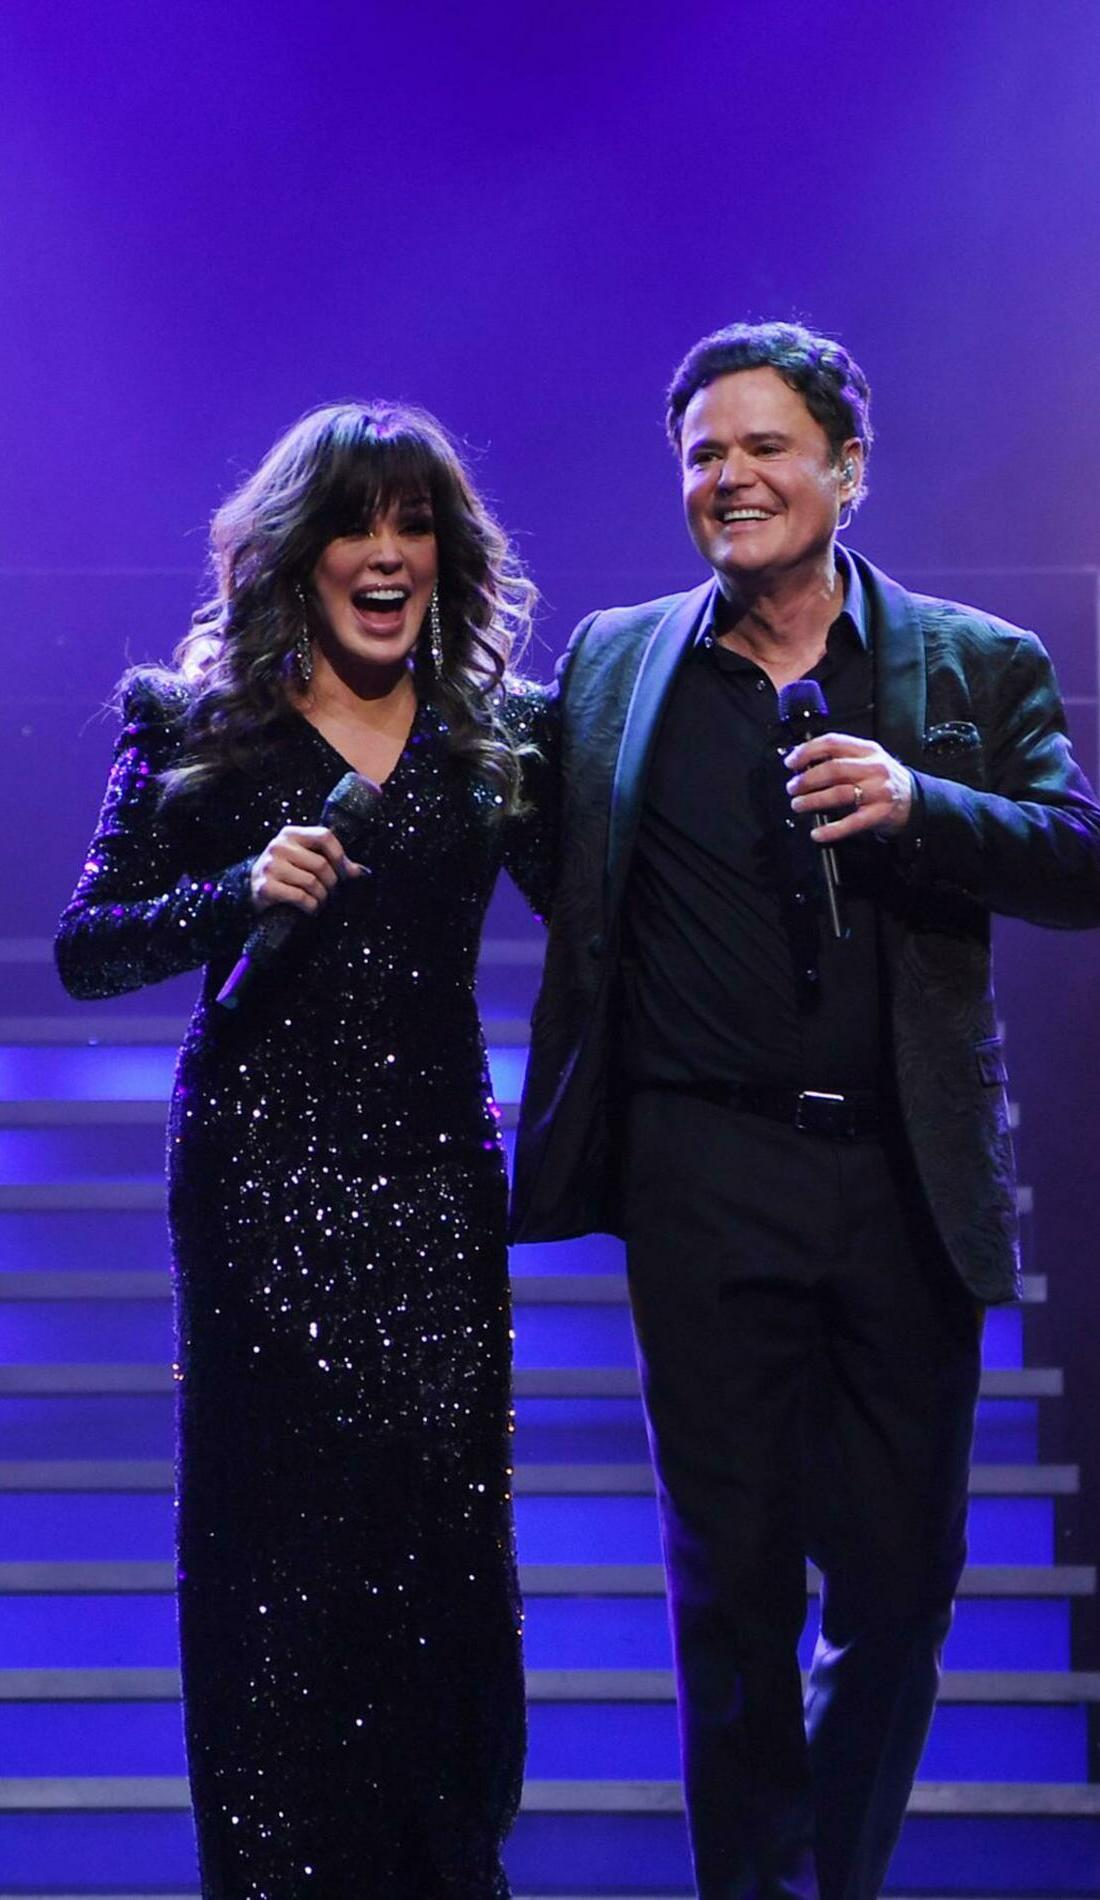 A Donny & Marie live event